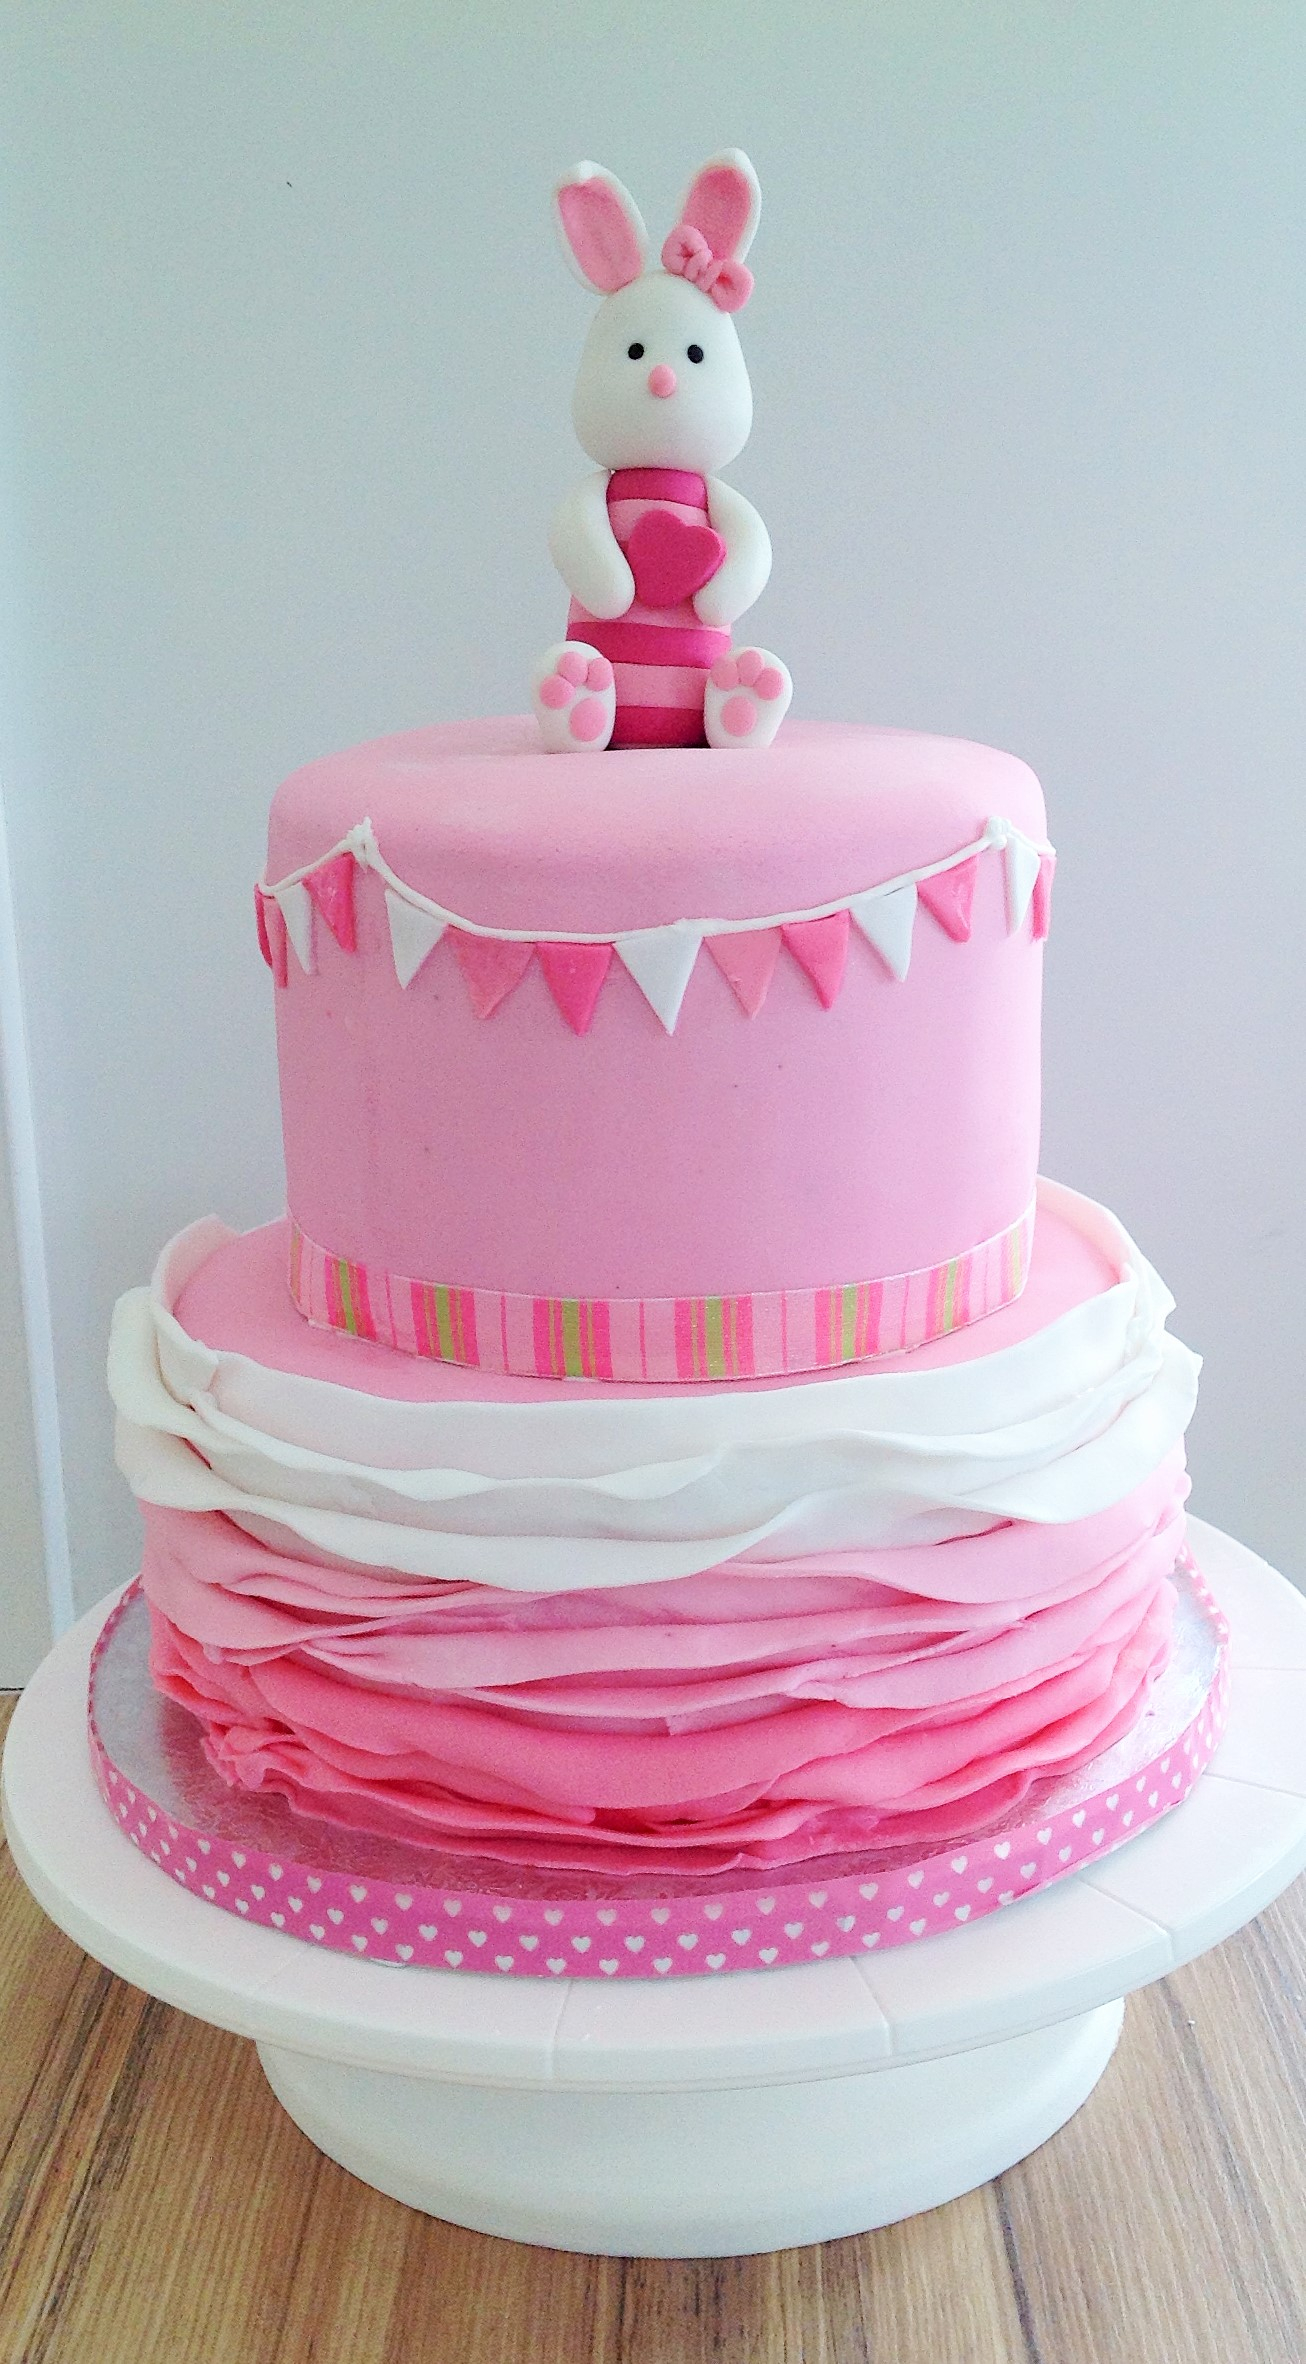 Pink Tiered Cake